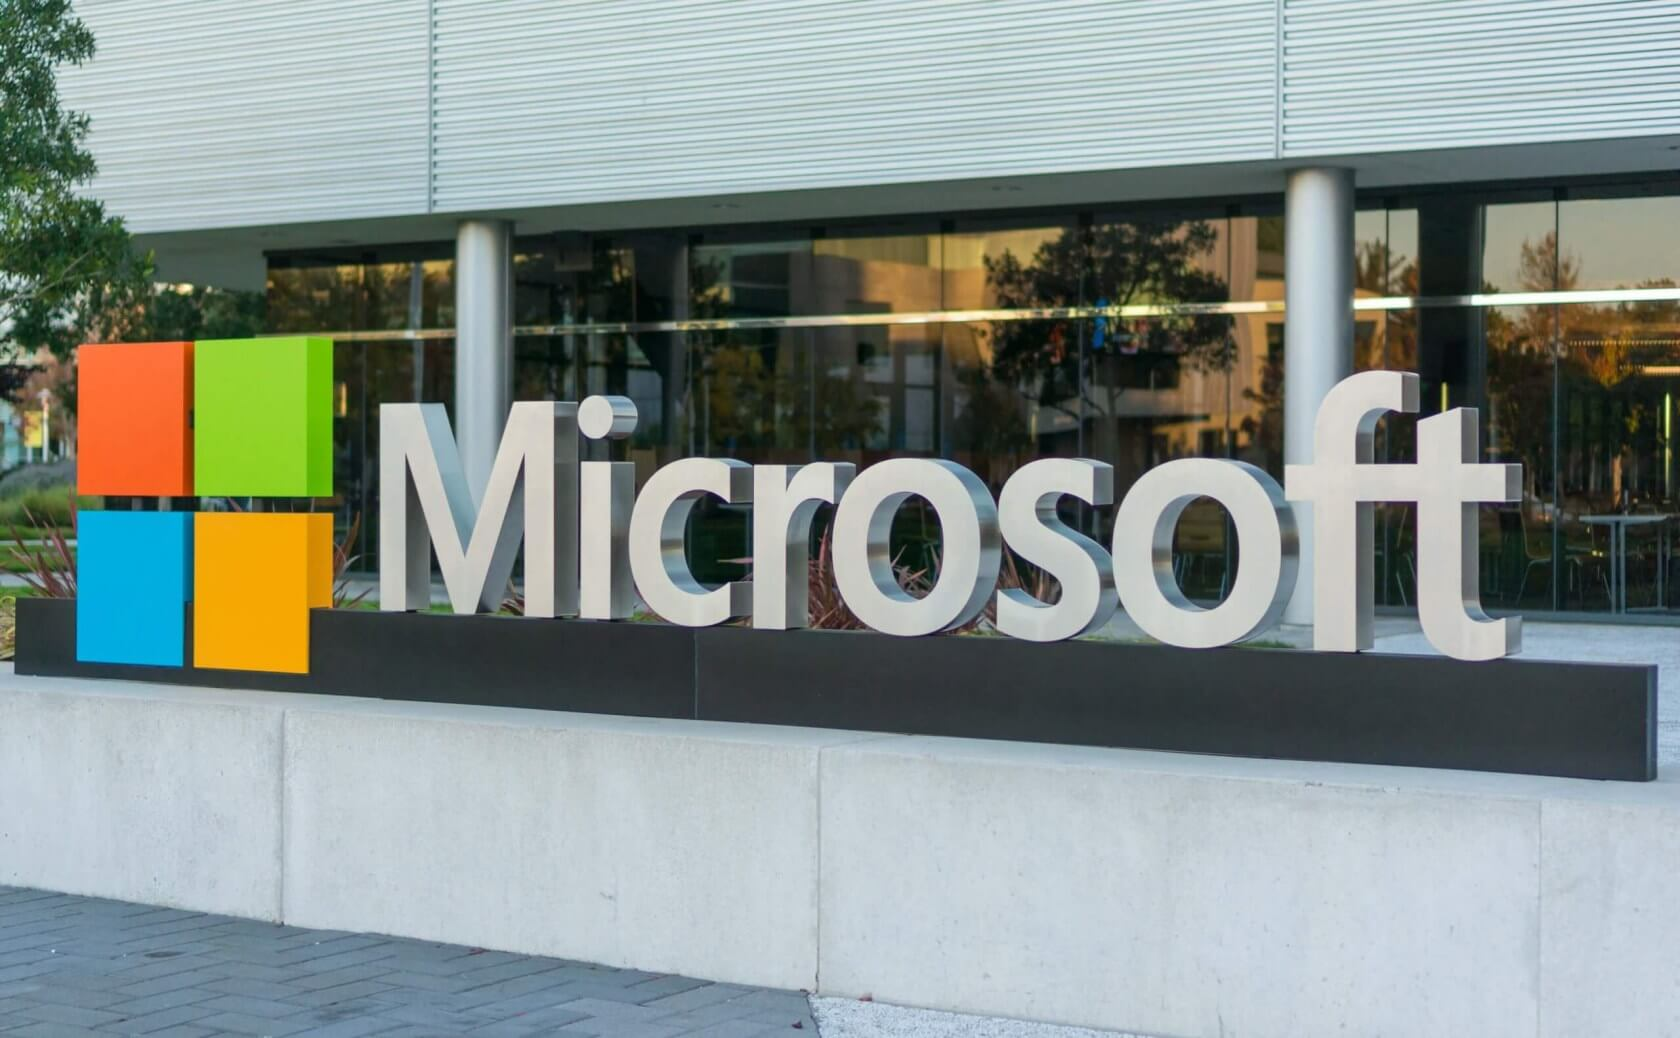 Microsoft has appointed a Chief Scientific Officer for the first time